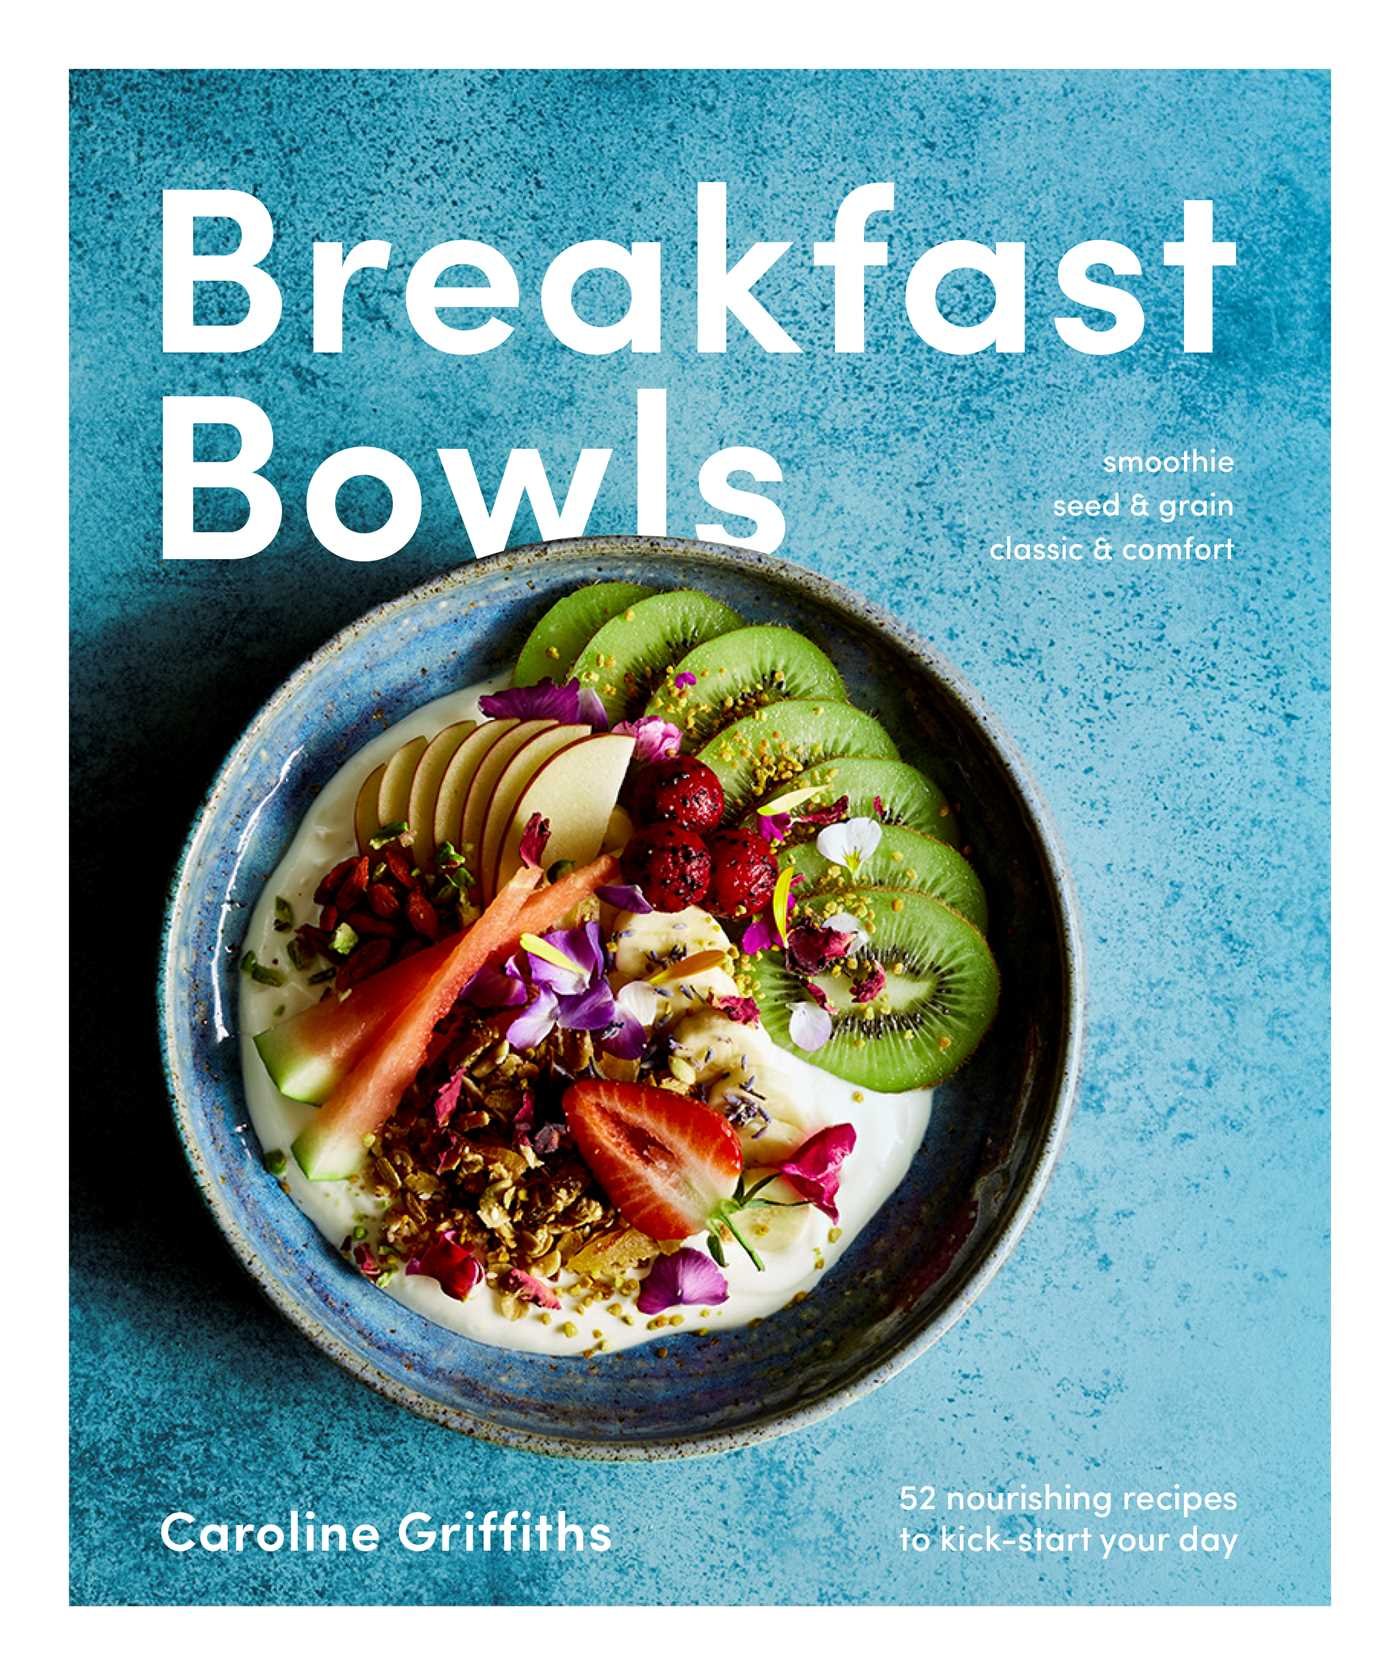 Breakfast bowls 52 nourishing recipes to kickstart your day 9781925418262 hr